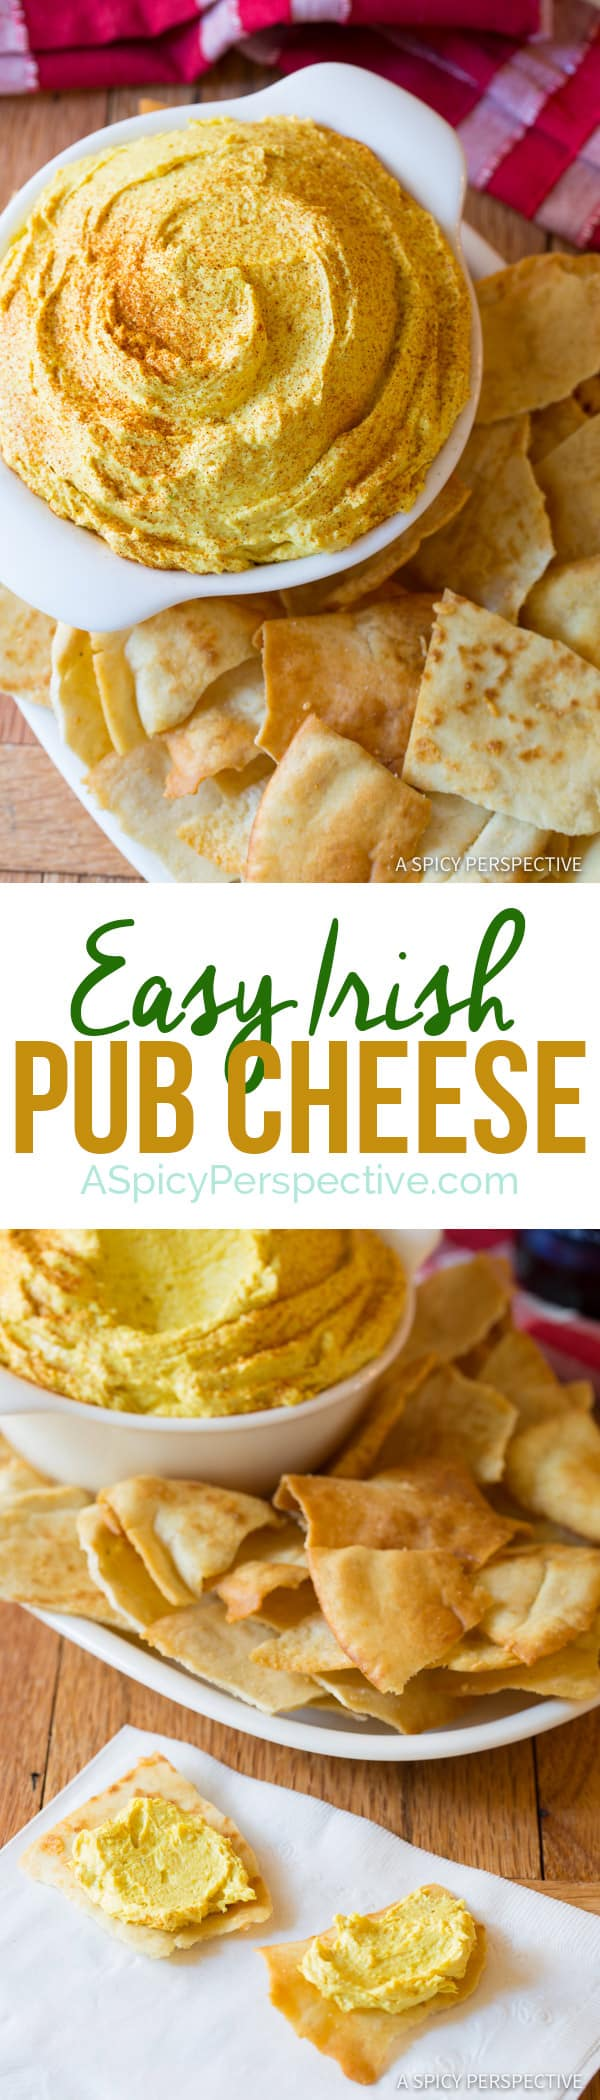 6-Ingredient Irish Pub Cheese | ASpicyPerspective.com